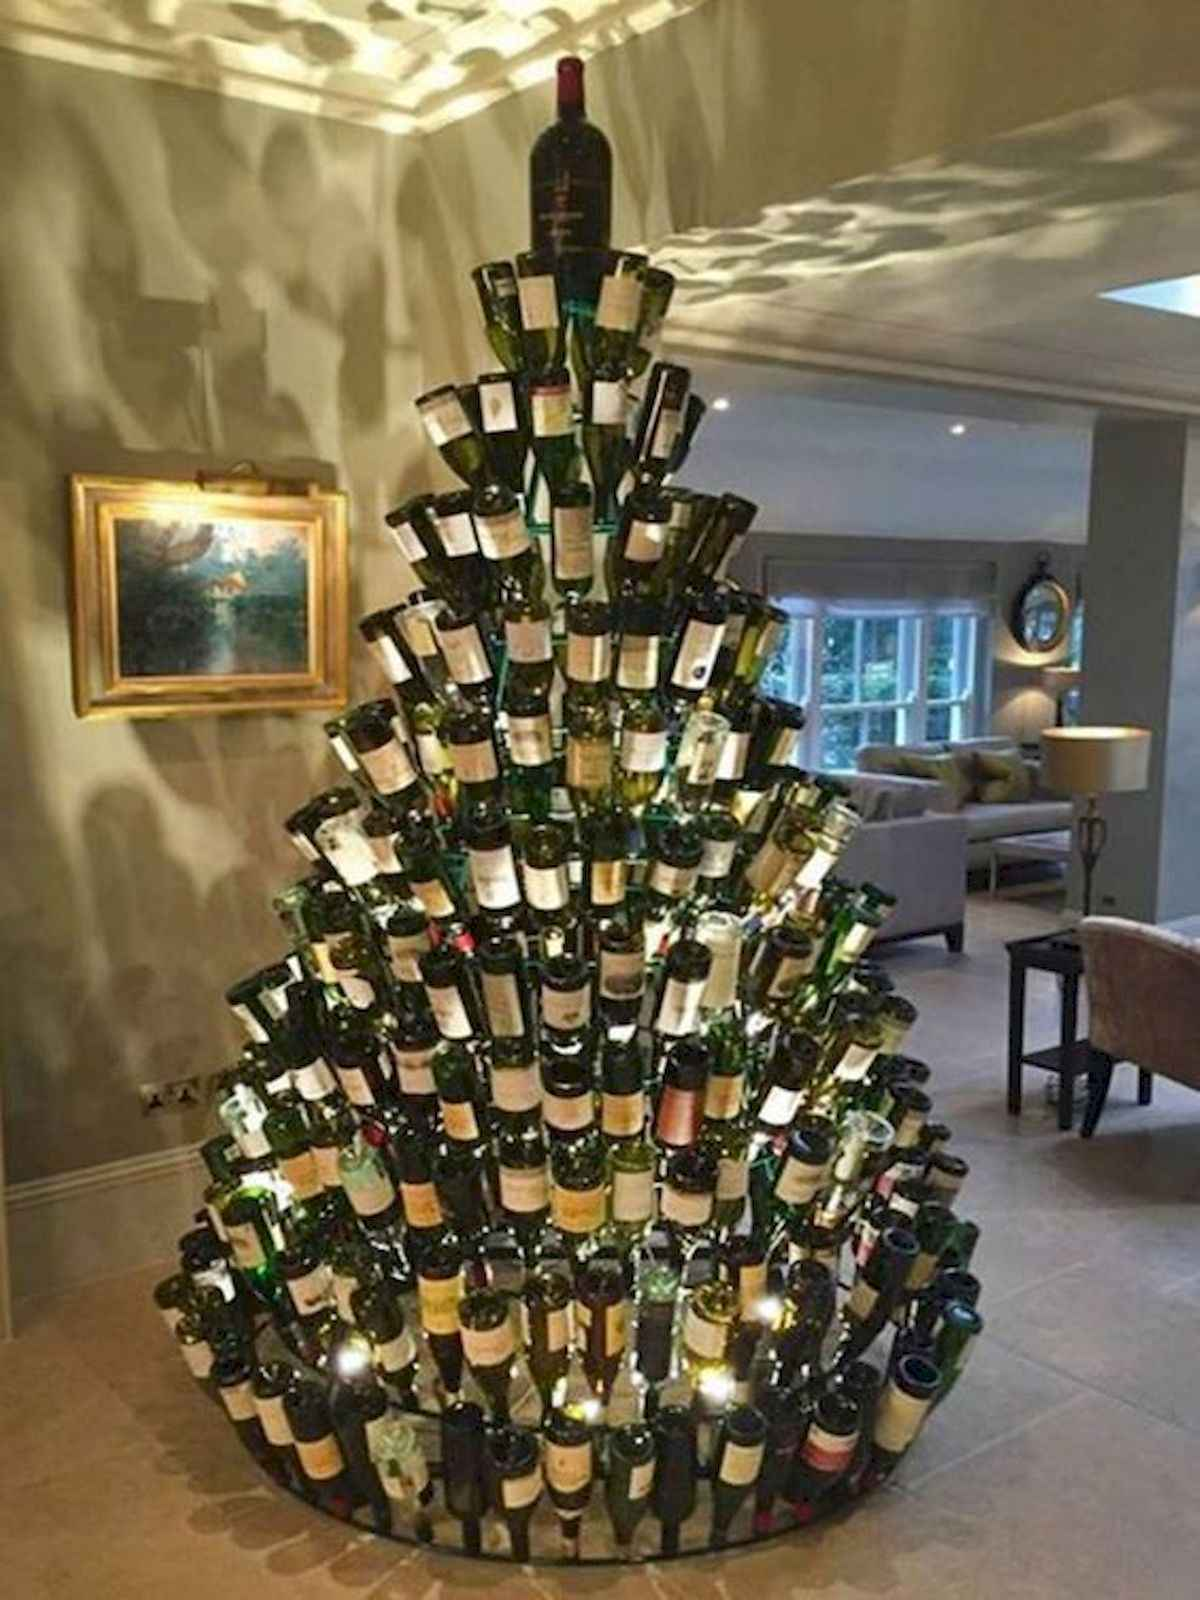 60 awesome christmas tree decorations ideas (54)